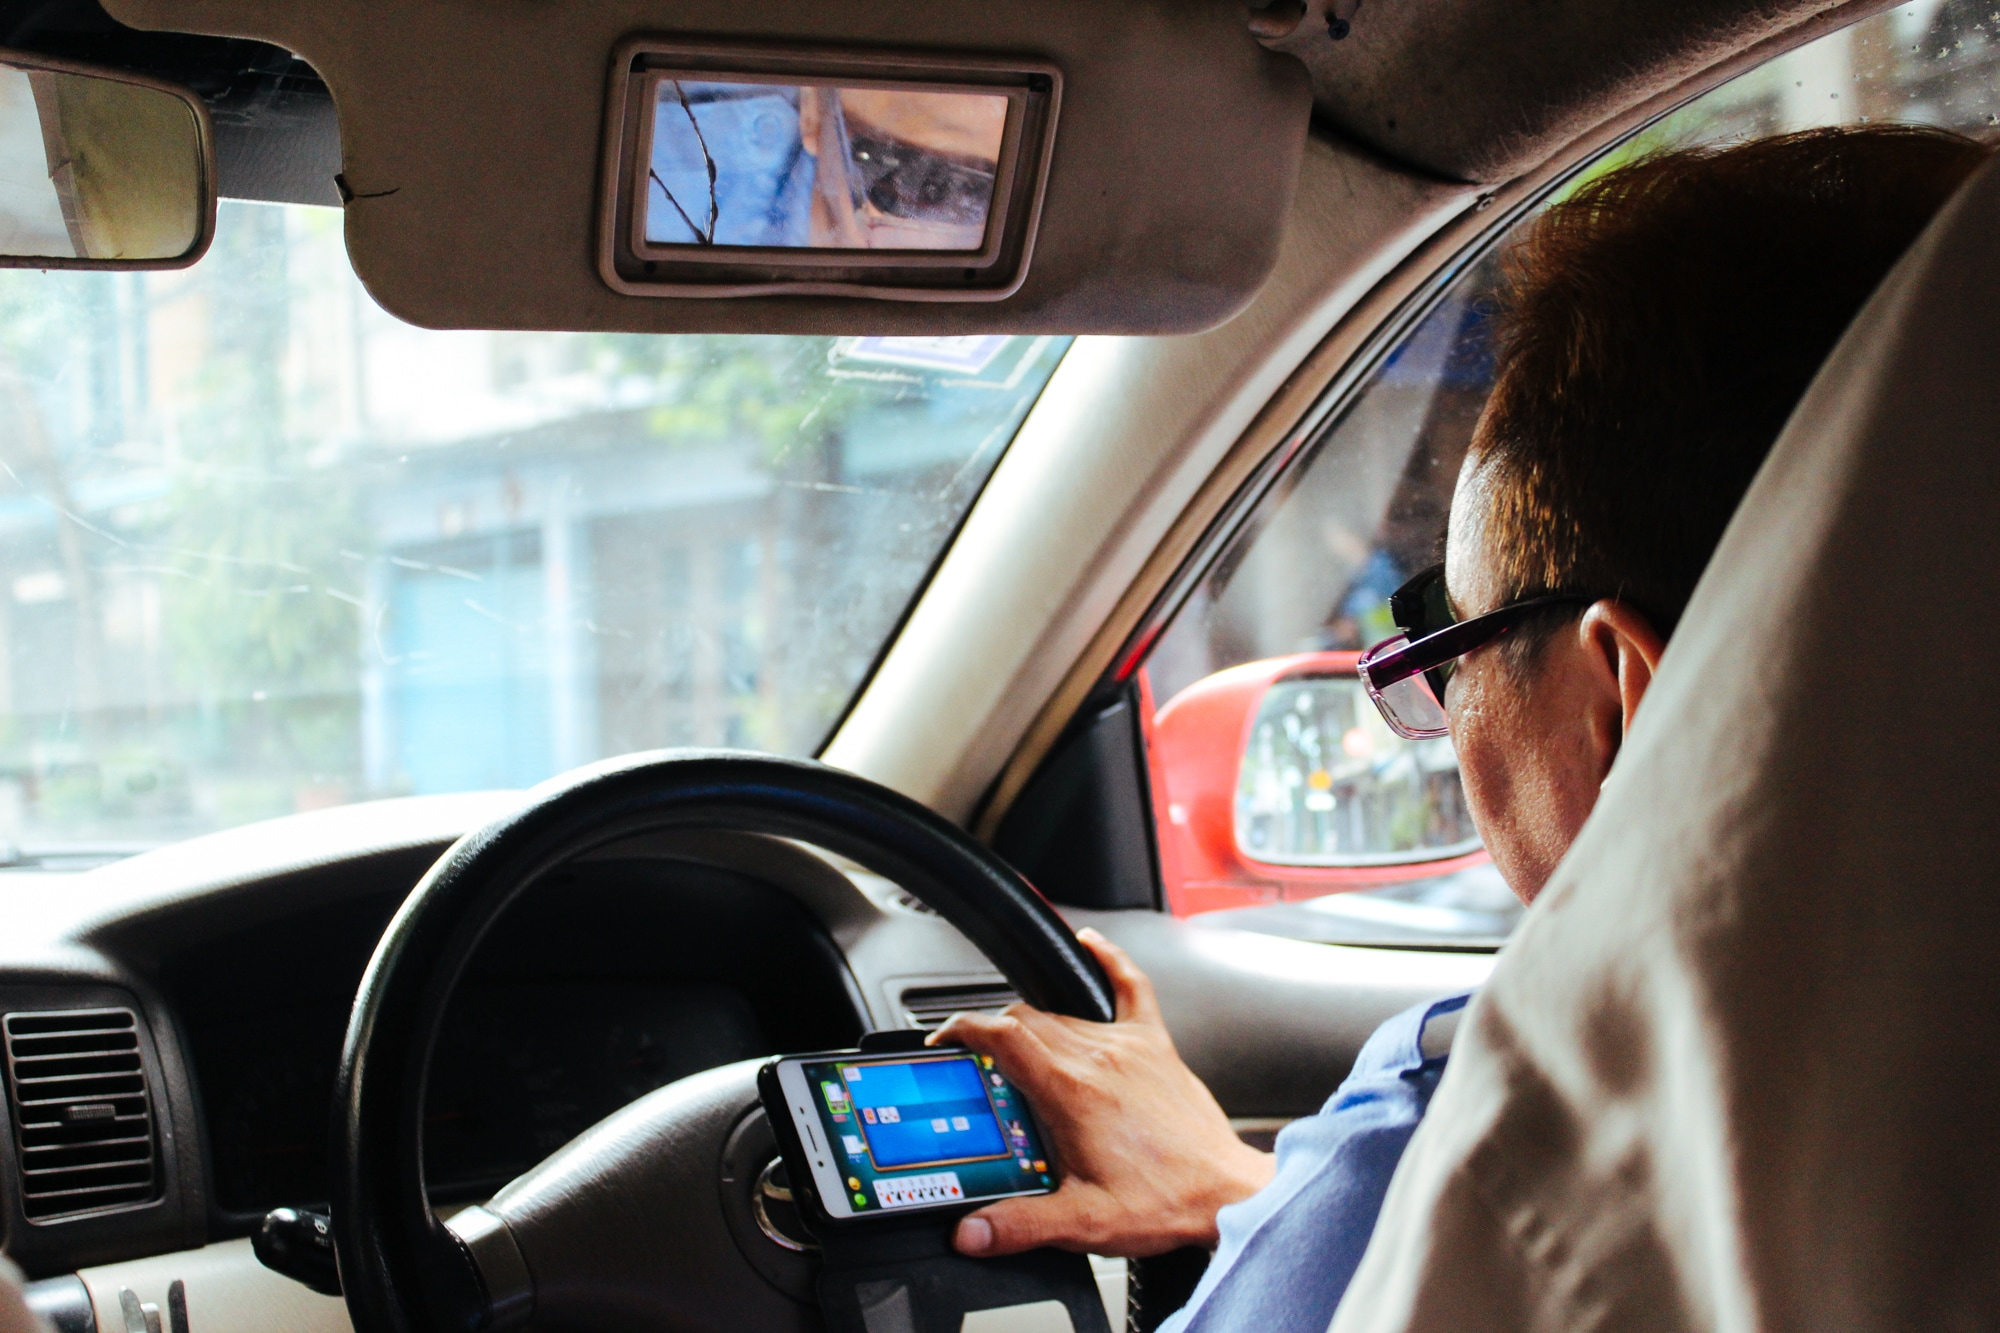 A taxi driver plays game on his phone as he drives through Bangkok